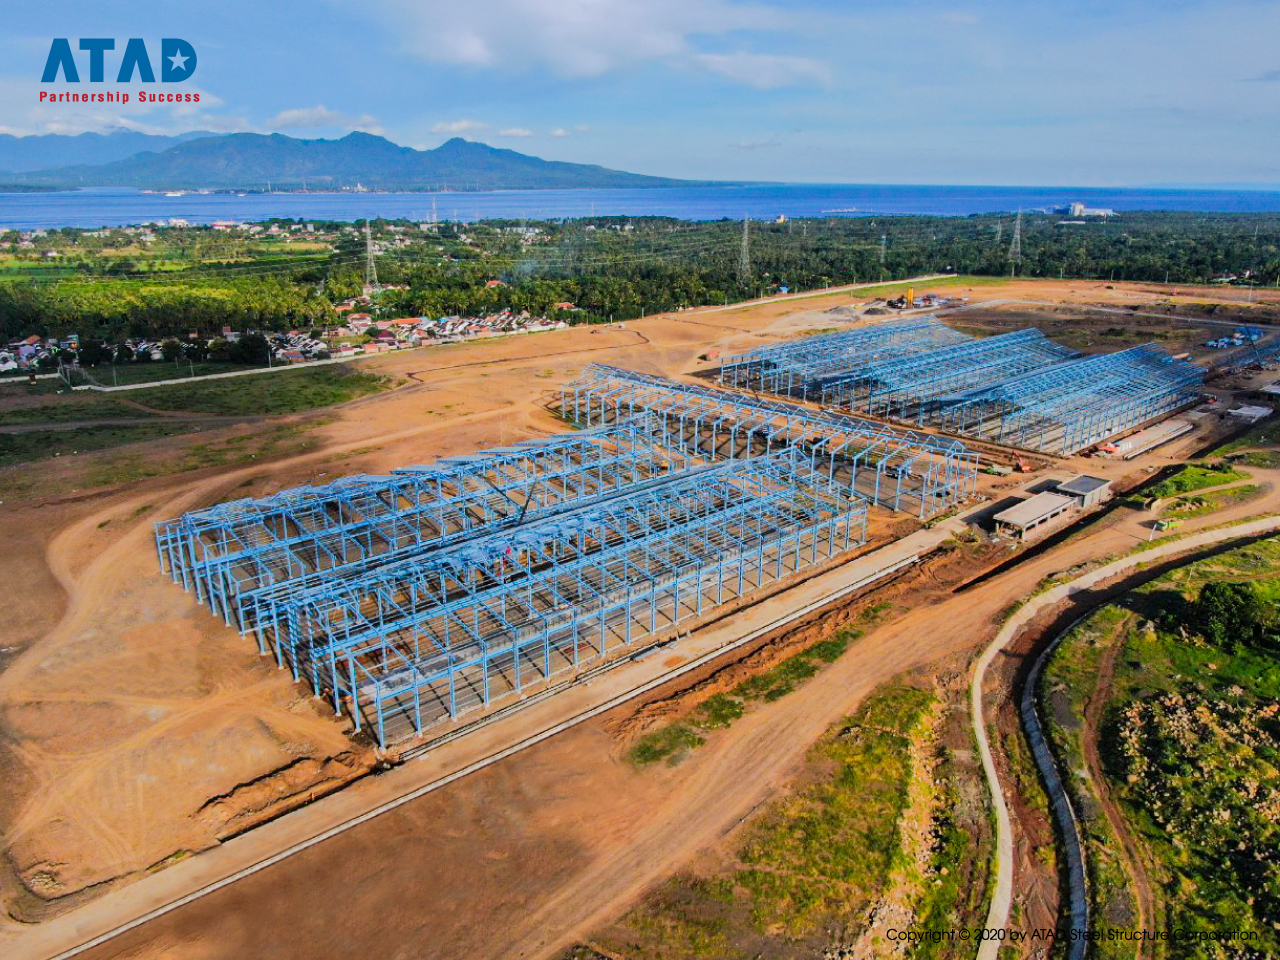 ATAD implemented the largest Indonesian rolling stock factory 1